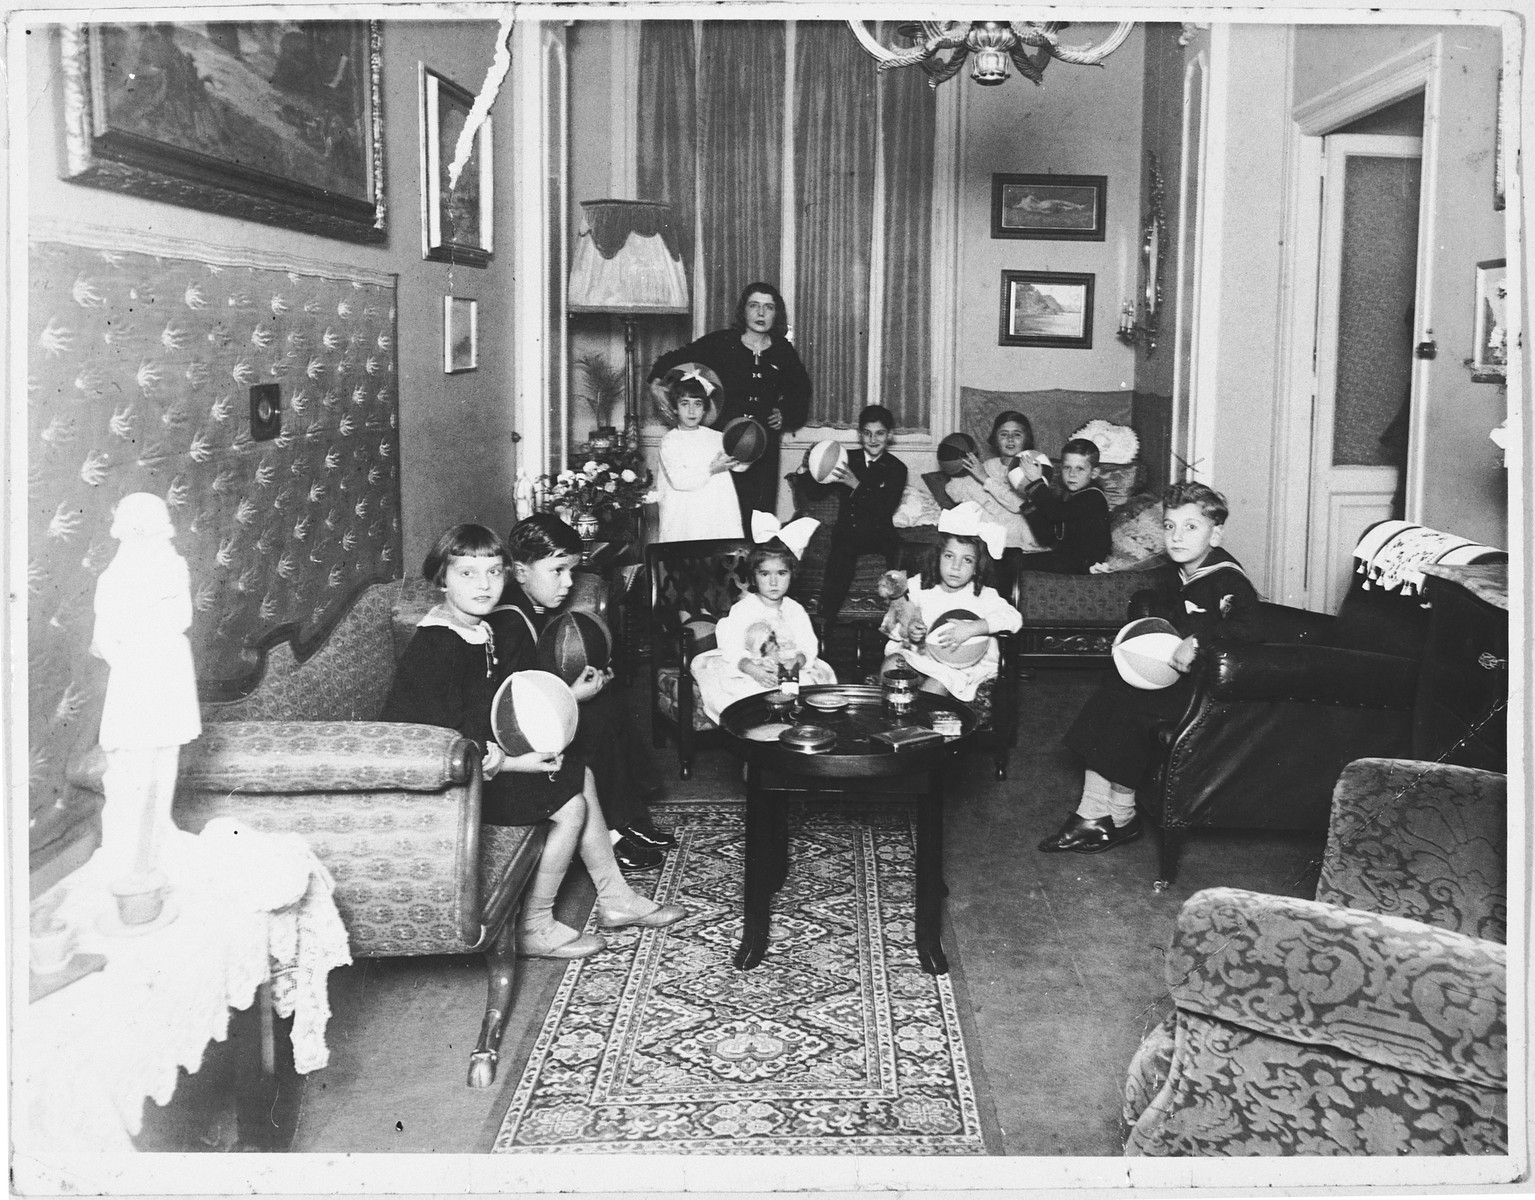 Jewish children attend a birthday party in an opulent apartment in Rome owned by a Hungarian Jewish woman.  Among those pictured are Serenella and Avishua Foa and their cousins, Anna and Andrea Bises.